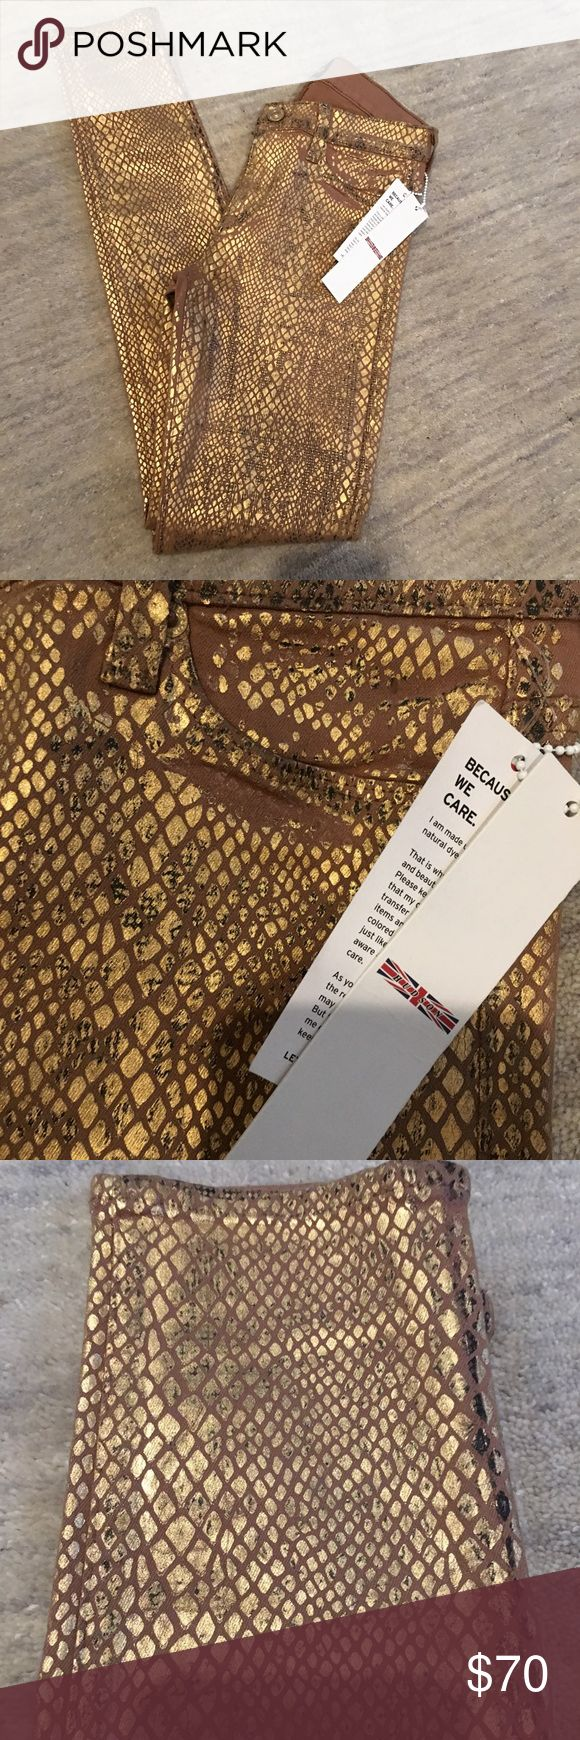 Hudson gold jeans 25 Gold denim perfect for fall! New with tags on! Hudson Jeans Jeans Skinny